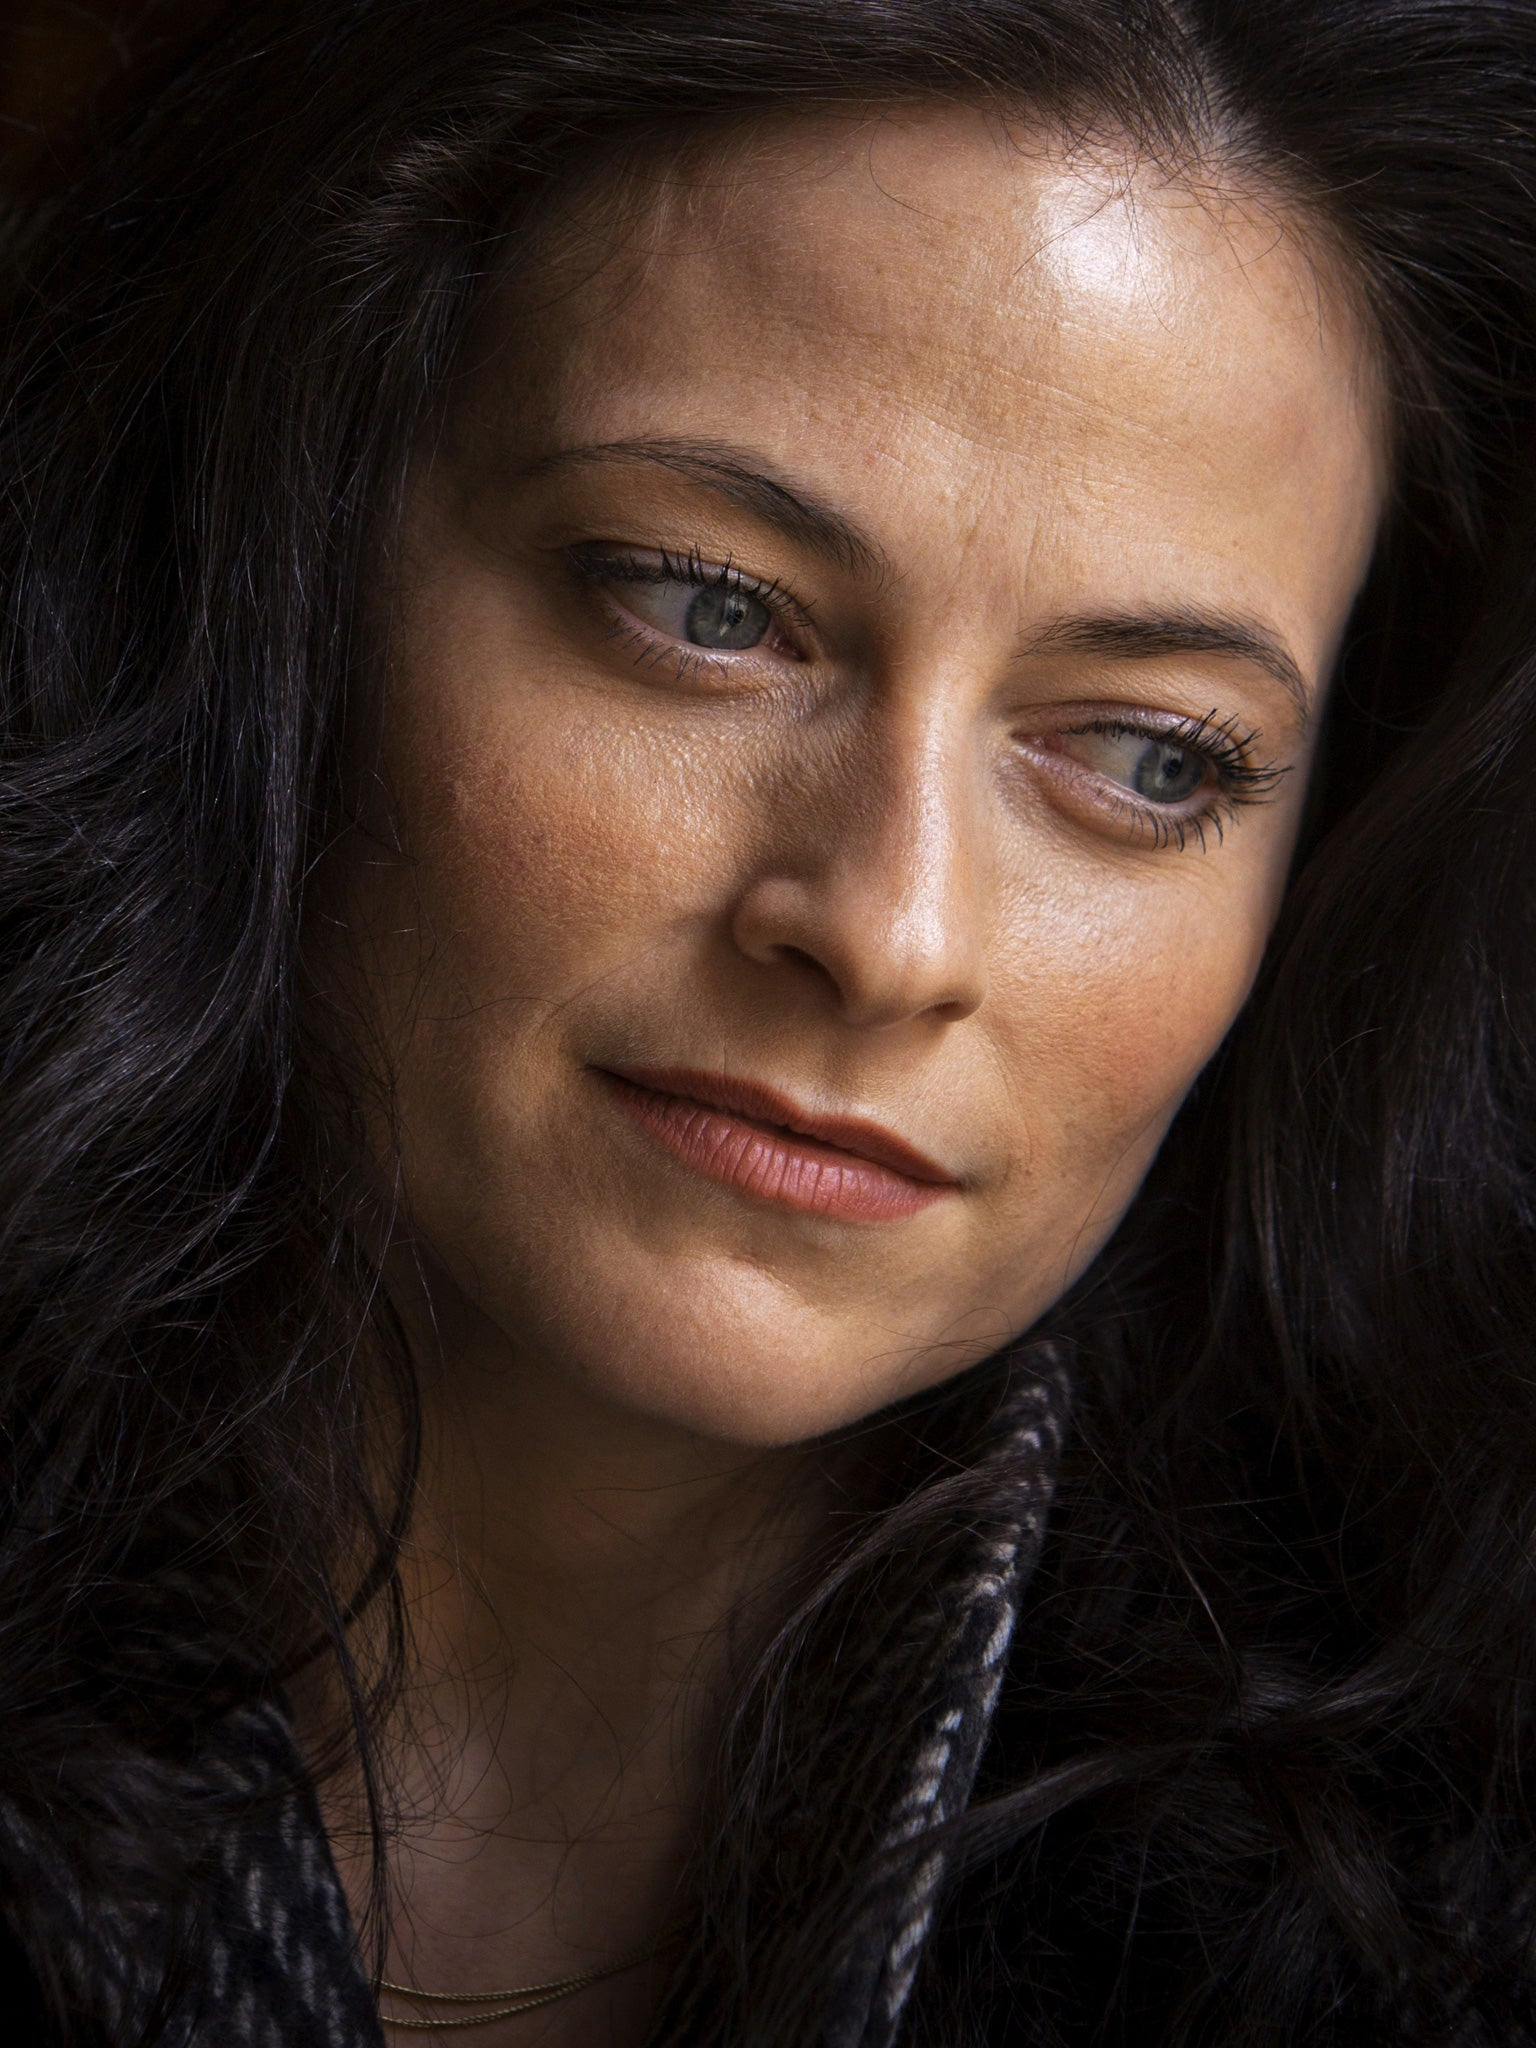 lara pulver tom hiddlestonlara pulver gif, lara pulver photoshoot, lara pulver edge of tomorrow, lara pulver tom hiddleston, lara pulver wiki, lara pulver sherlock season 4, lara pulver фото, lara pulver 2016, lara pulver interview, lara pulver benedict cumberbatch, lara pulver andrew scott, lara pulver insta, lara pulver fan, lara pulver listal, lara pulver and benedict cumberbatch fanfic, lara pulver вк, lara pulver accent, lara pulver quantico, lara pulver leather, lara pulver sherlock the final problem